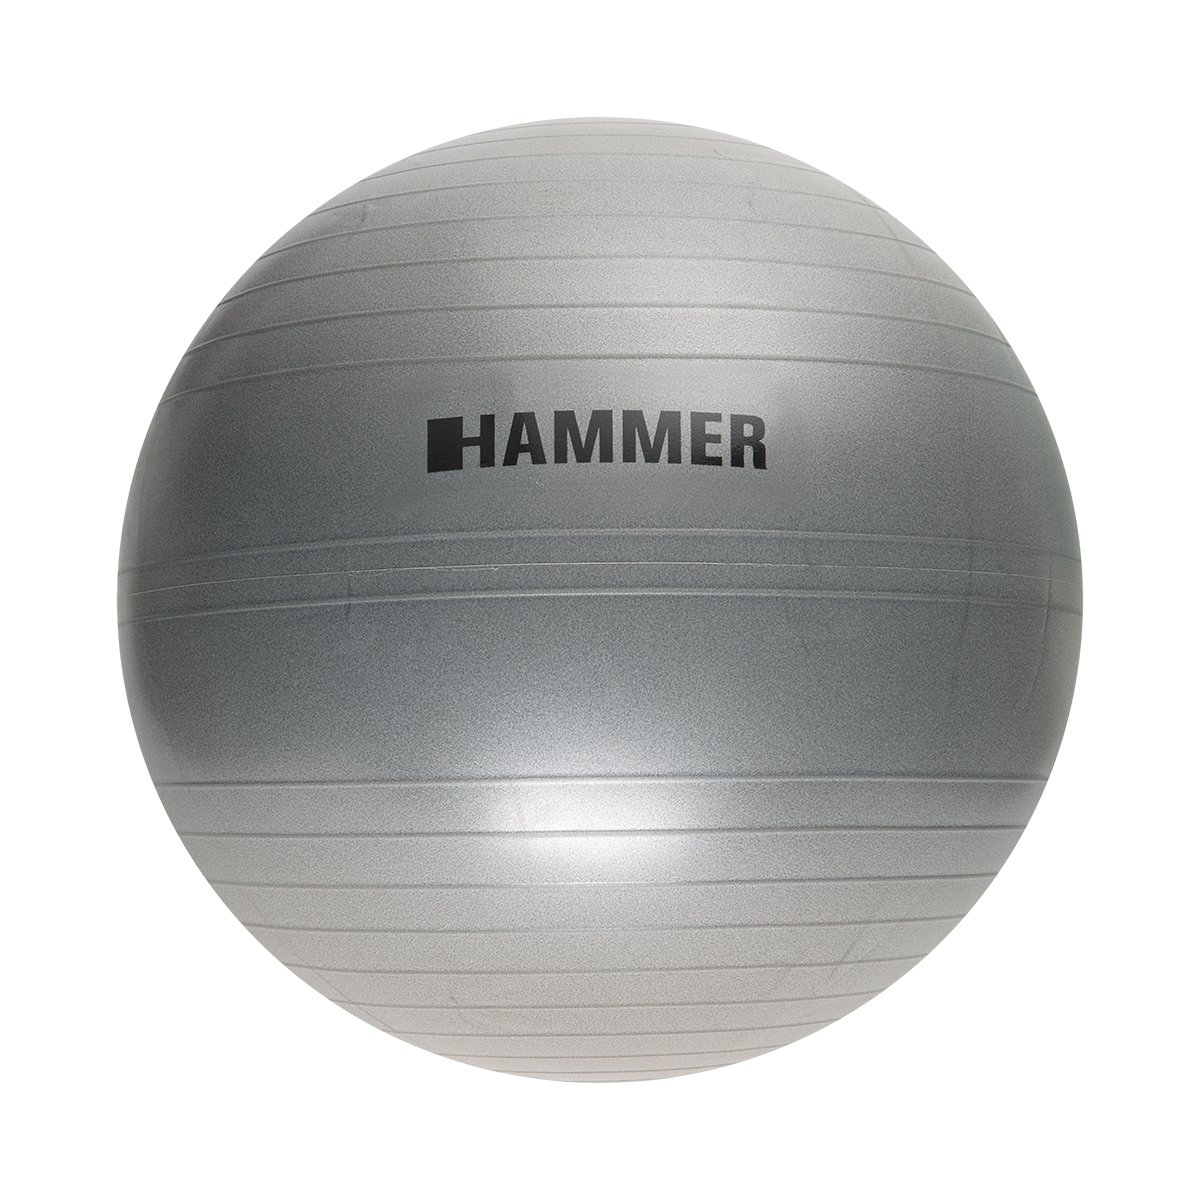 Hammer Gymnastikball amazon